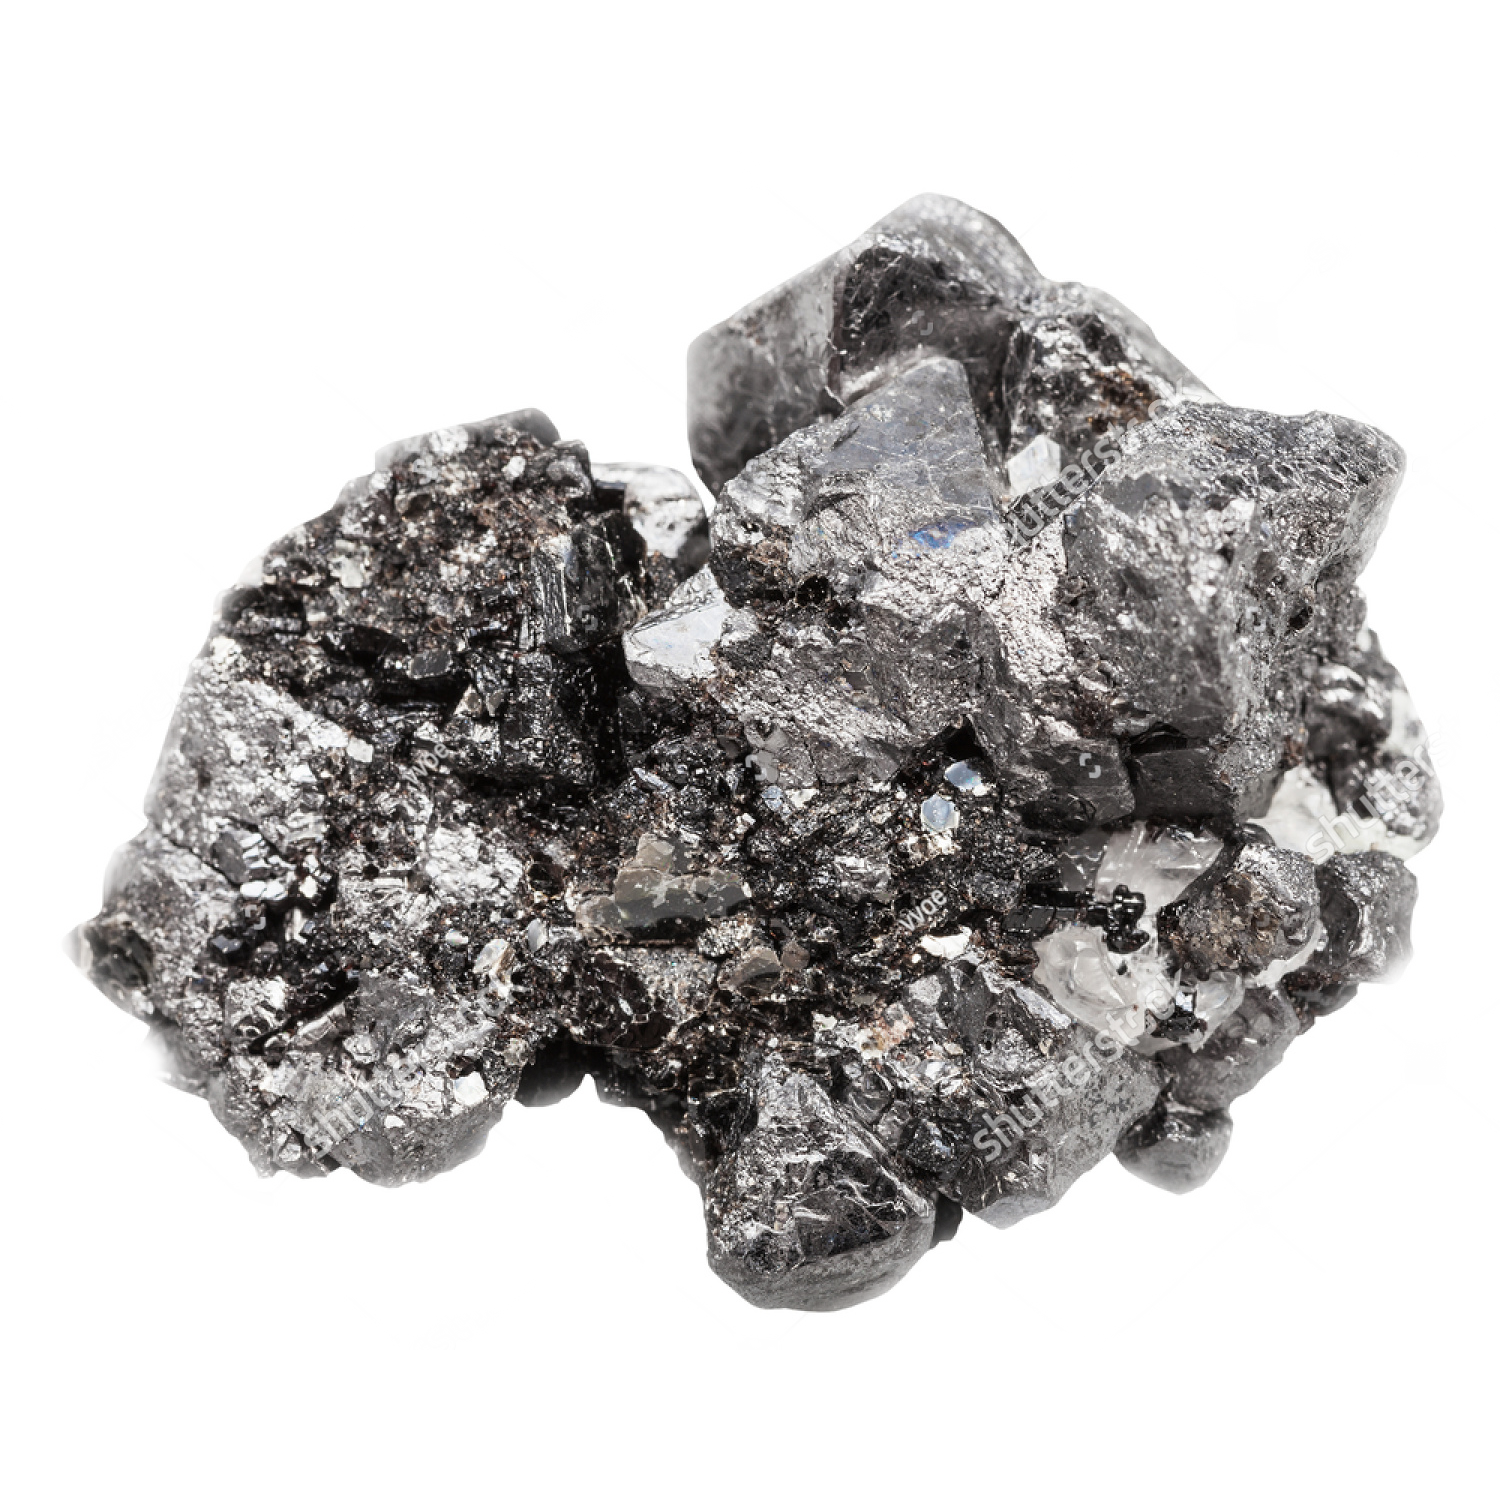 Ame minerals world of. Transparent mineral semi clip art black and white